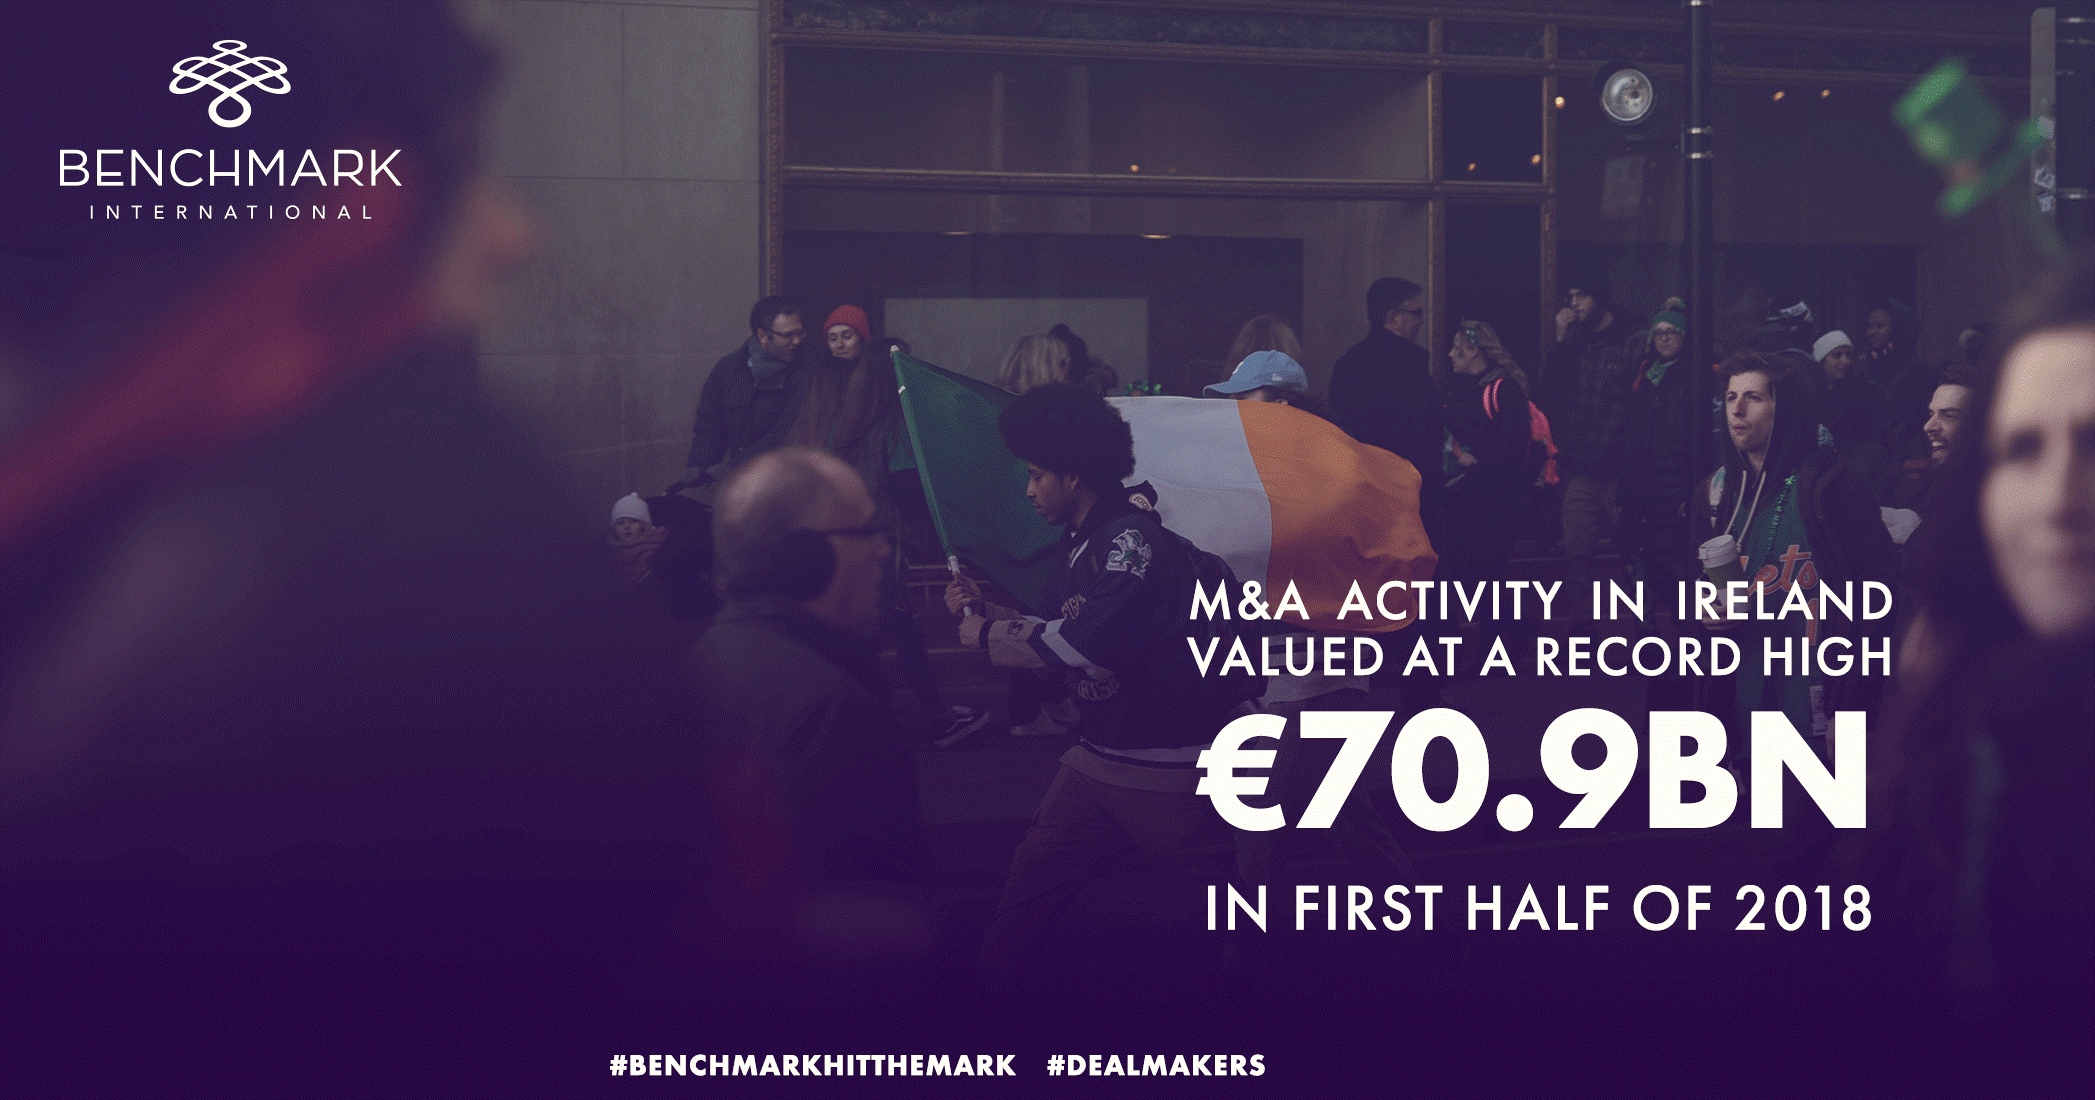 M&A Activity in Ireland Valued at a Record High €70.9bn in First Half of 2018